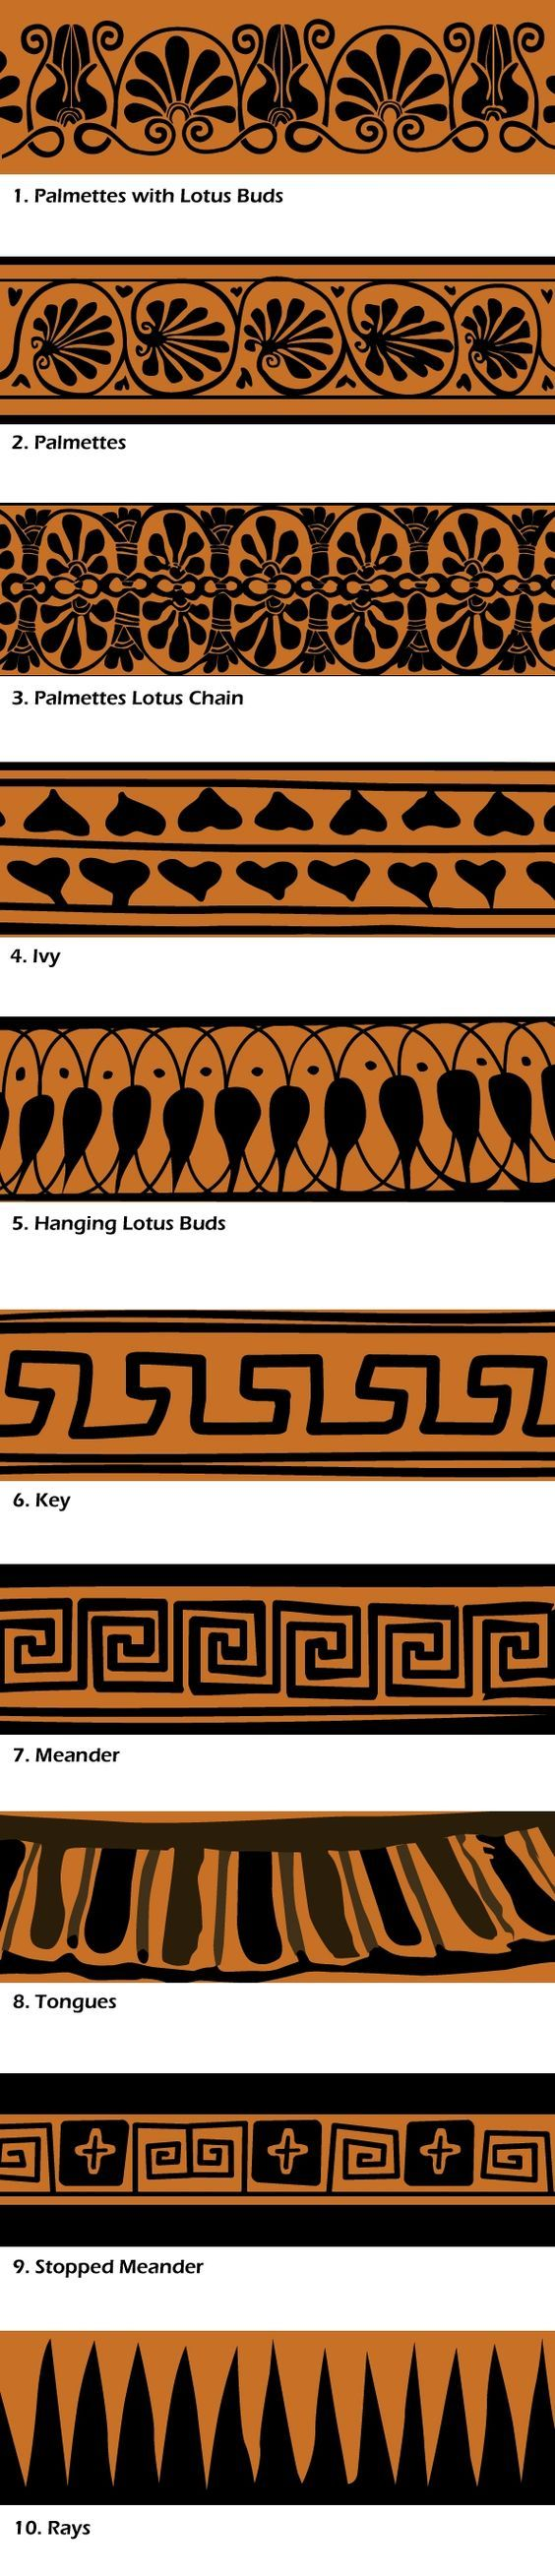 greek pottery patterns - referencing for pysanky ideas - when you get a chance to teach me @Tracy M: